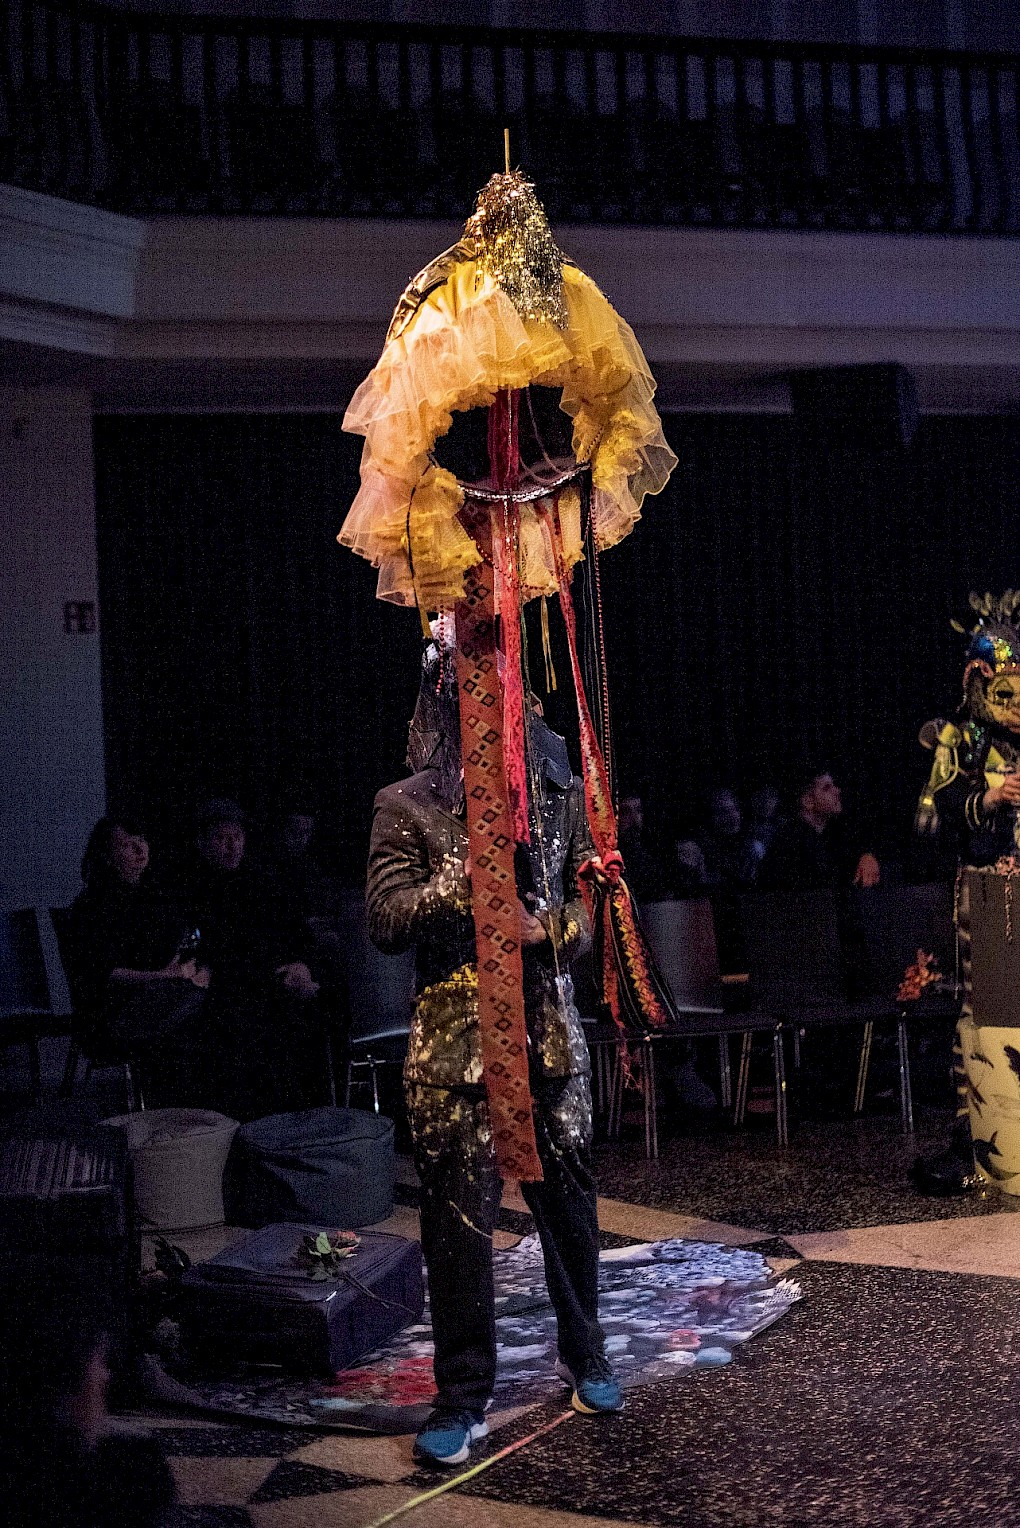 Incantations for Ecologies of Darkness: Performance by Valeria Montti Colque | Photo: Raisa Galofre